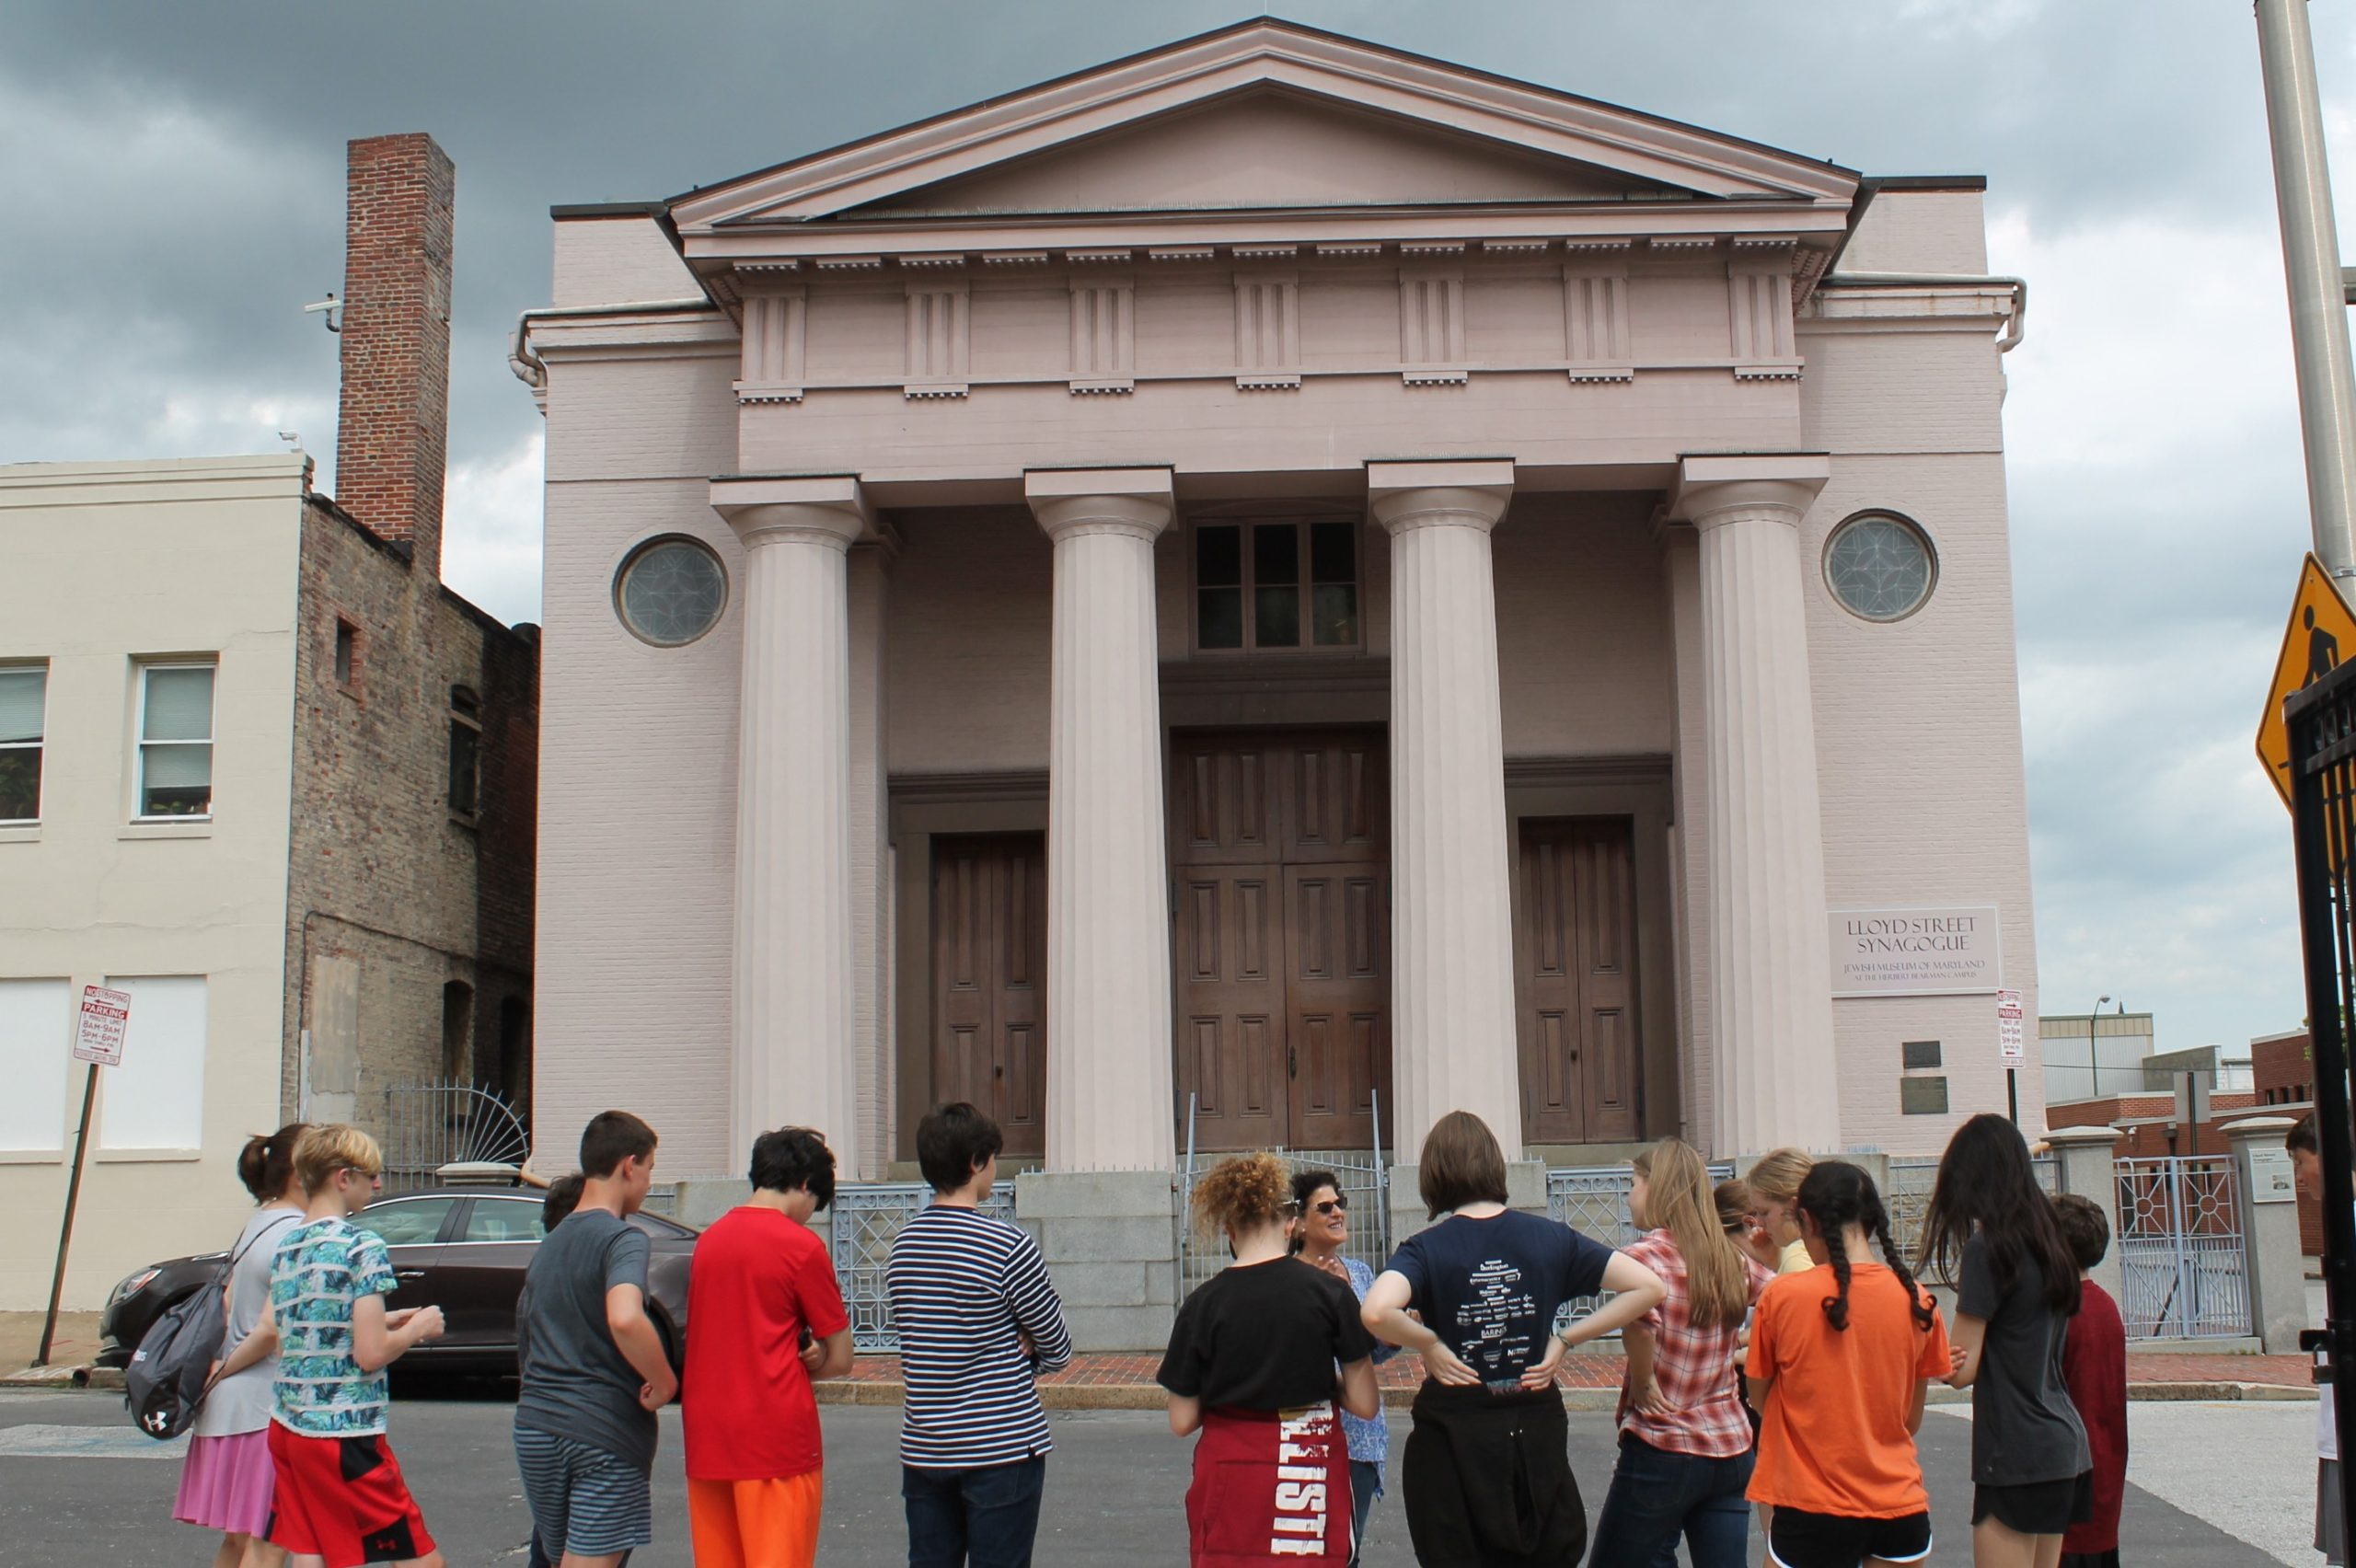 A group of young people stand outside the Lloyd Street Synagogue, a large building with columns and a pointed top. The group faces a tour guide who speaks to the group.